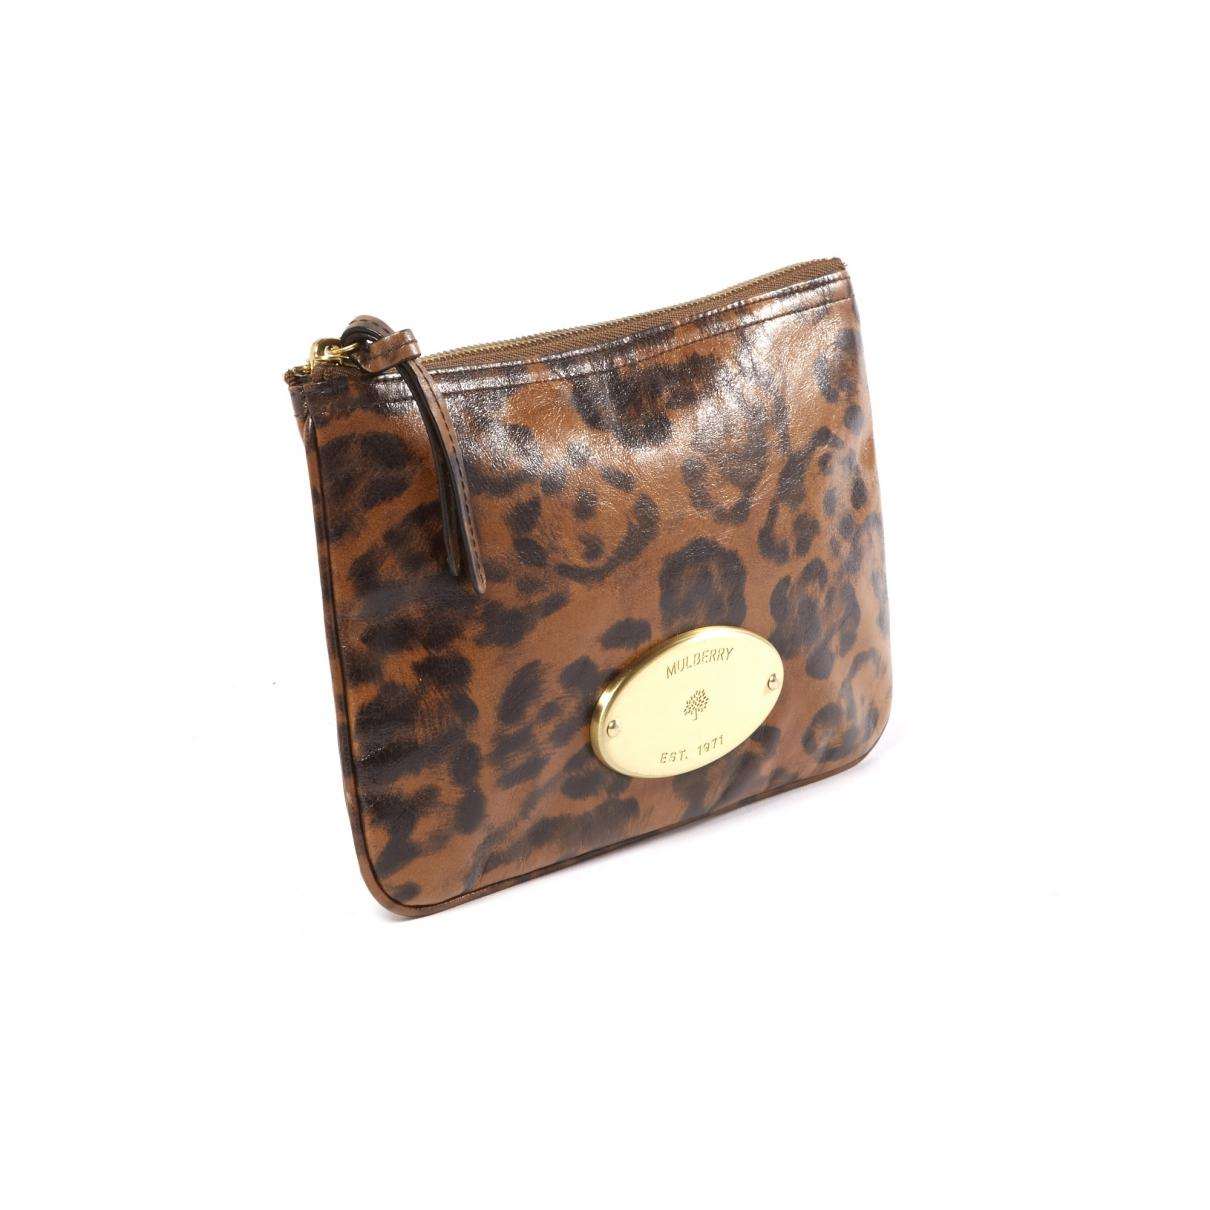 Mulberry - Pre-owned Brown Leather Clutch Bags - Lyst. View fullscreen 91170da77d122